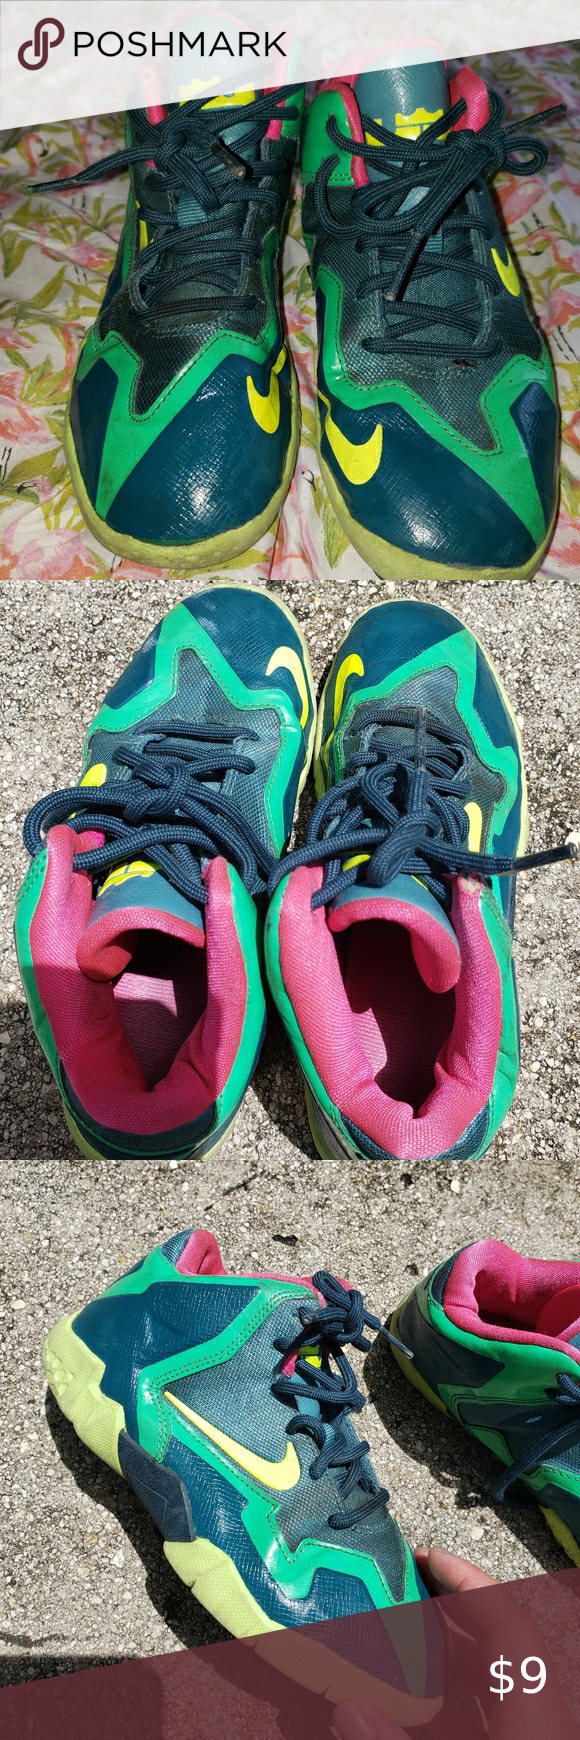 Nike Size 13c Green and pink Sneakers